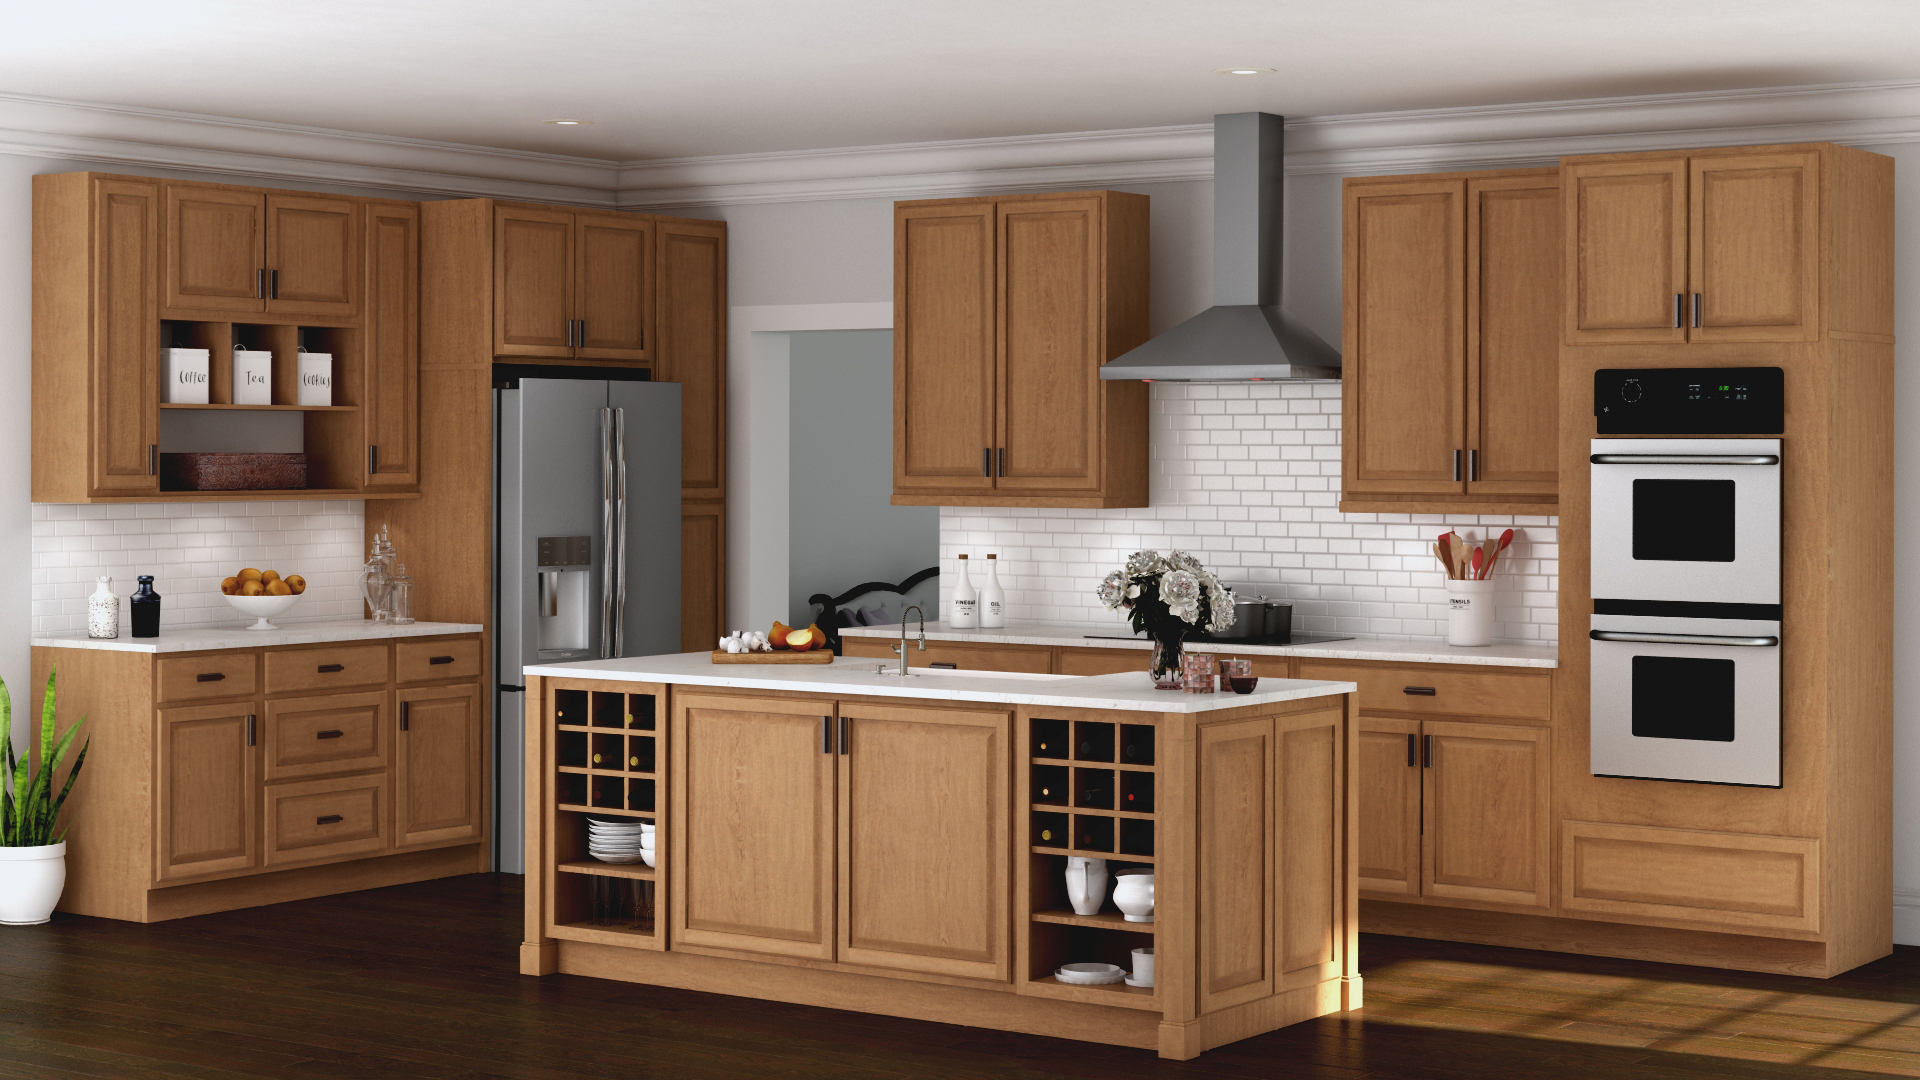 Hampton Wall Kitchen Cabinets in Medium Oak Kitchen